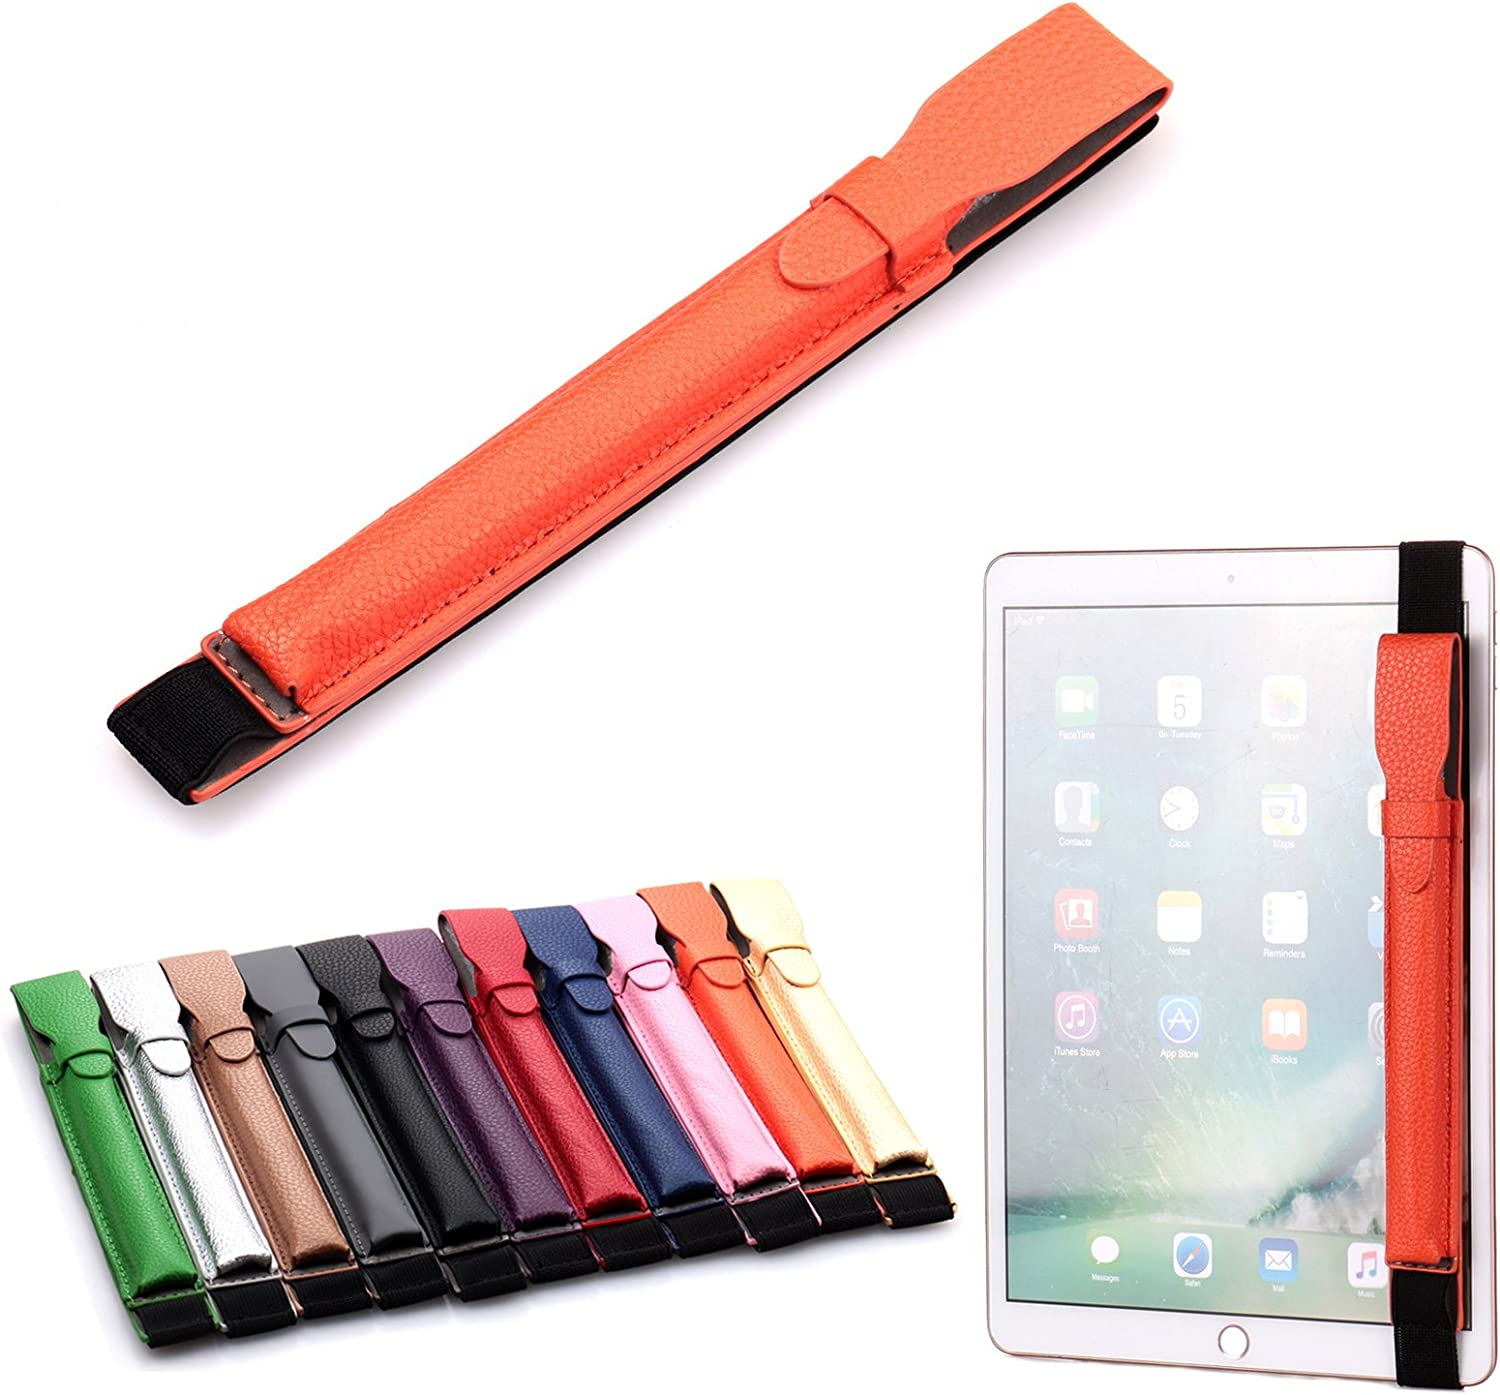 Artyond Pencil Case Holder for Apple Pencil,PU Leather Elastic Pencil Pocket Sleeve Detachable Pouch Cover for Apple Pencil, Compatible with iPad Pro 9.7, iPad Pro 10.5 & iPad Pro 12.9 Cases(Orange)